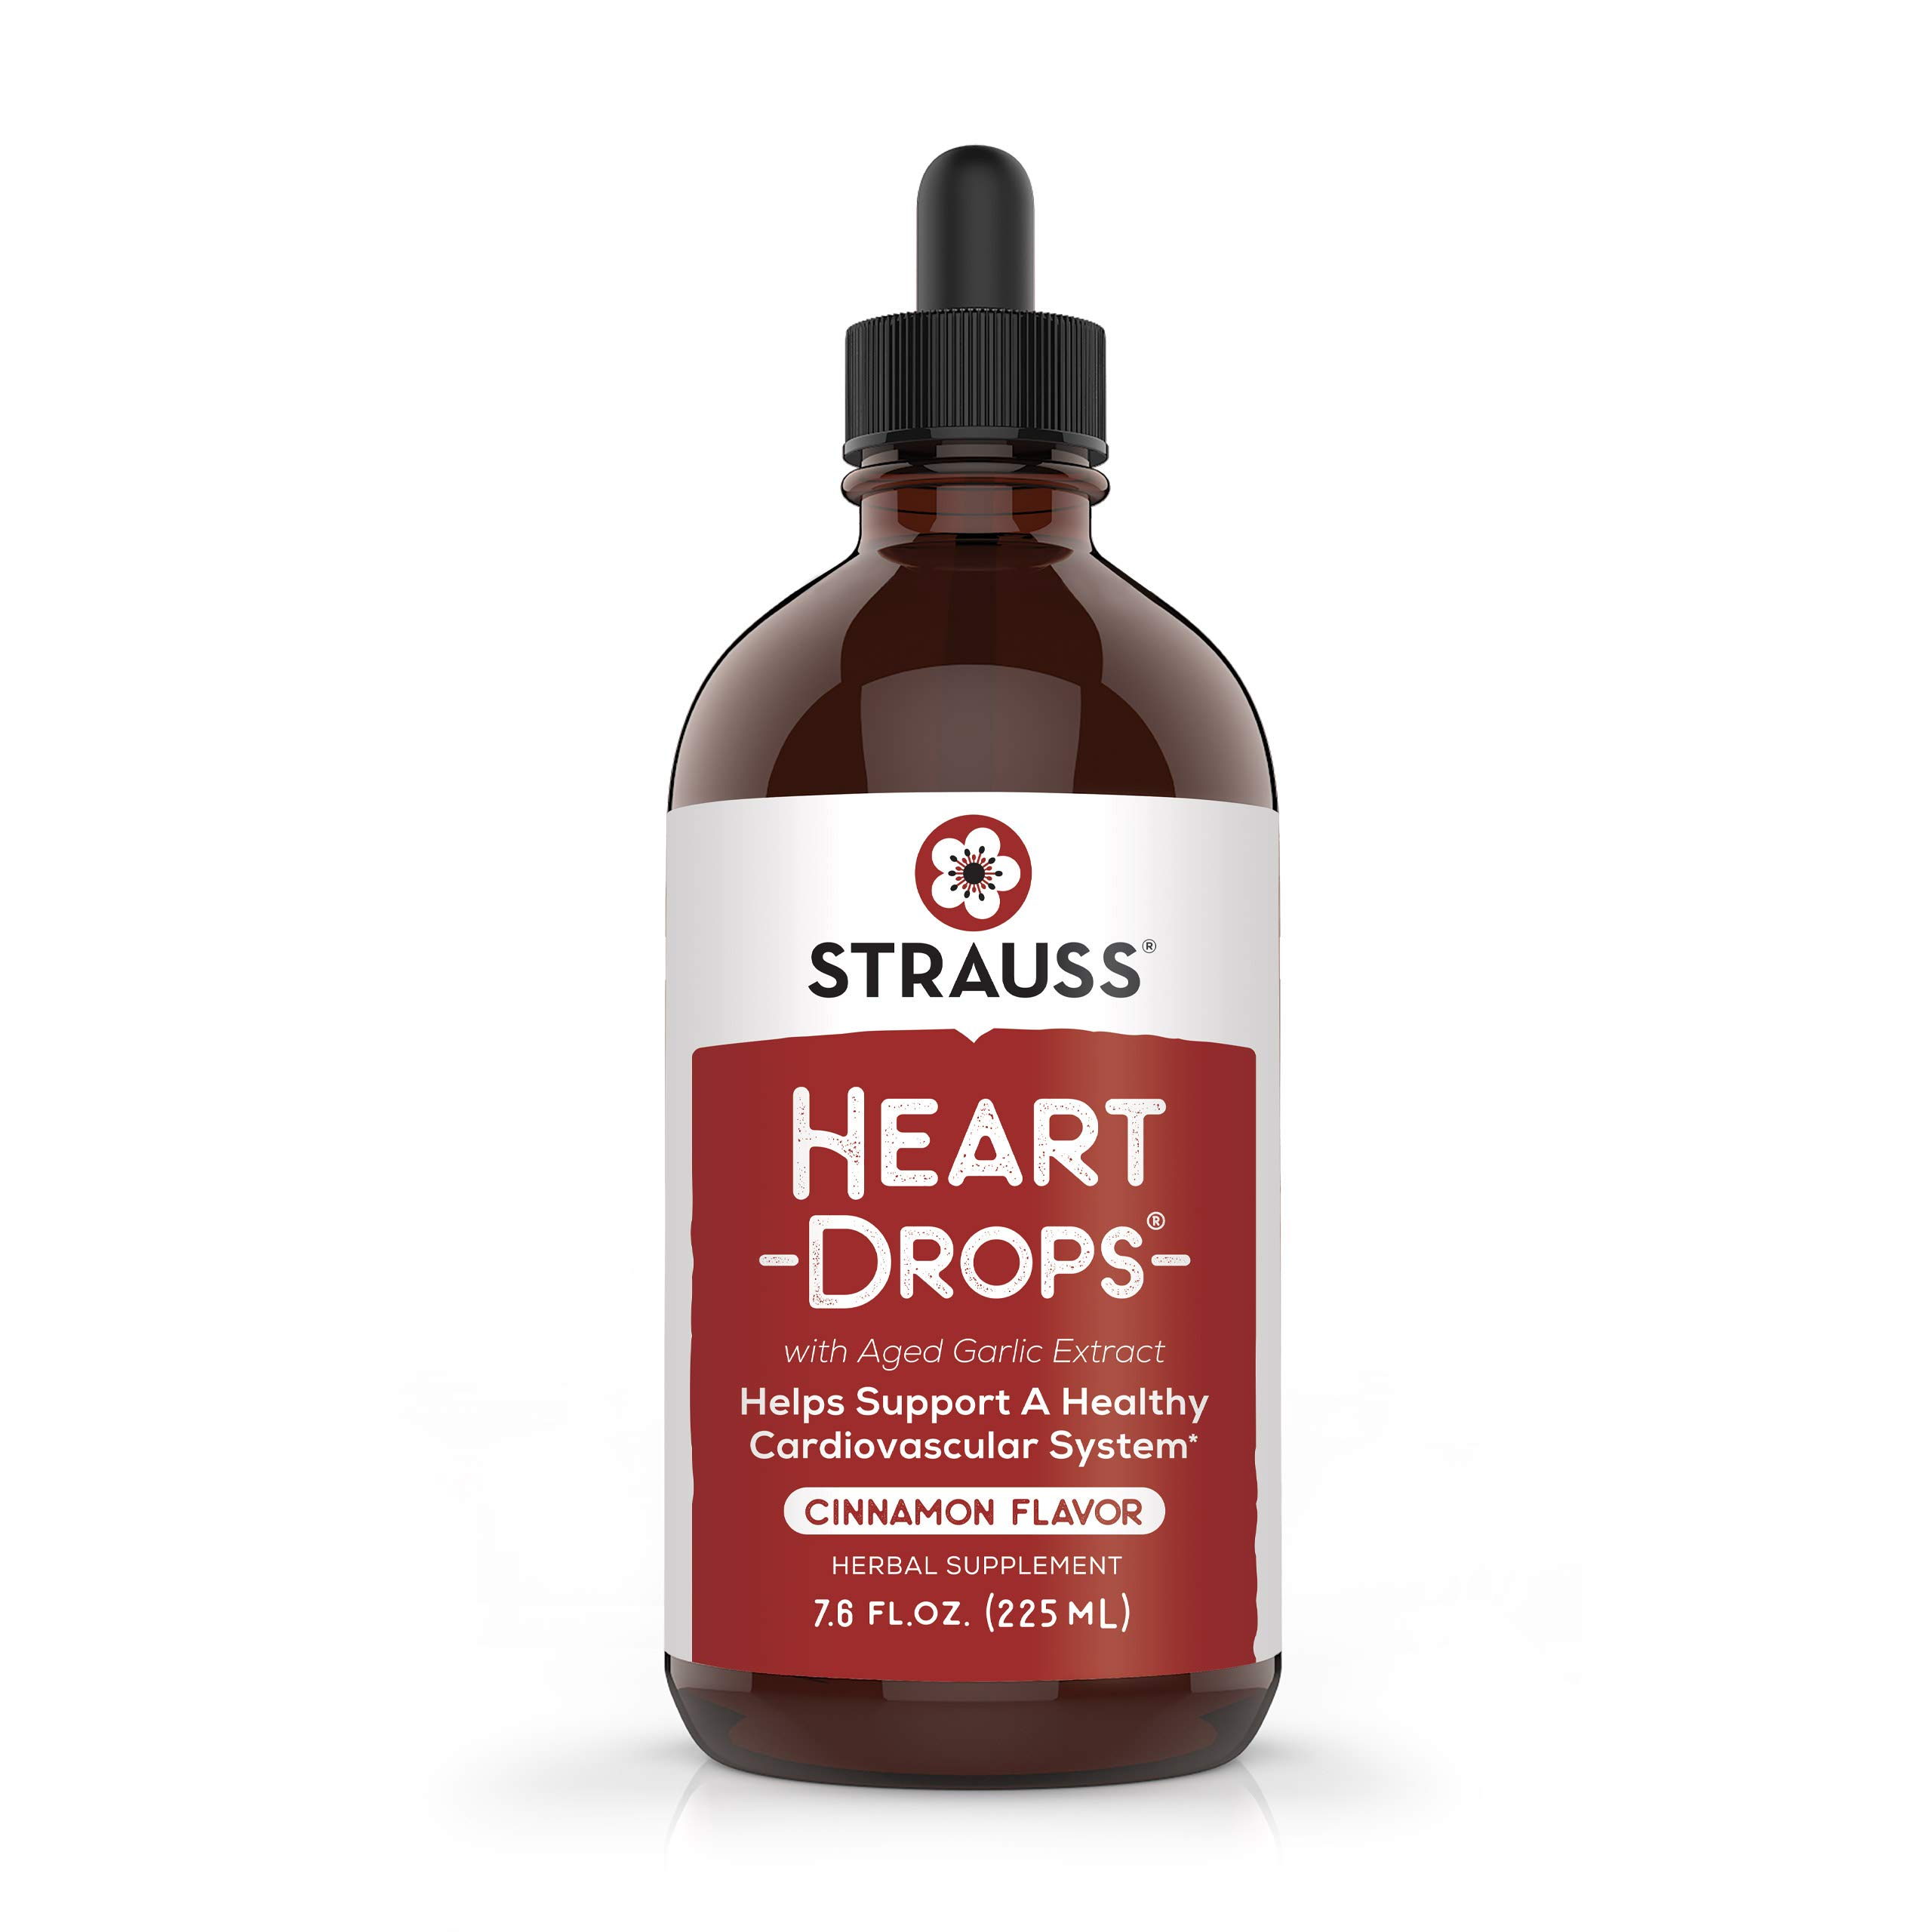 Strauss Naturals Heartdrops, Herbal Heart Supplements with European Mistletoe and Extracts of Aged Garlic, 7.6 fl oz, Cinnamon Flavor